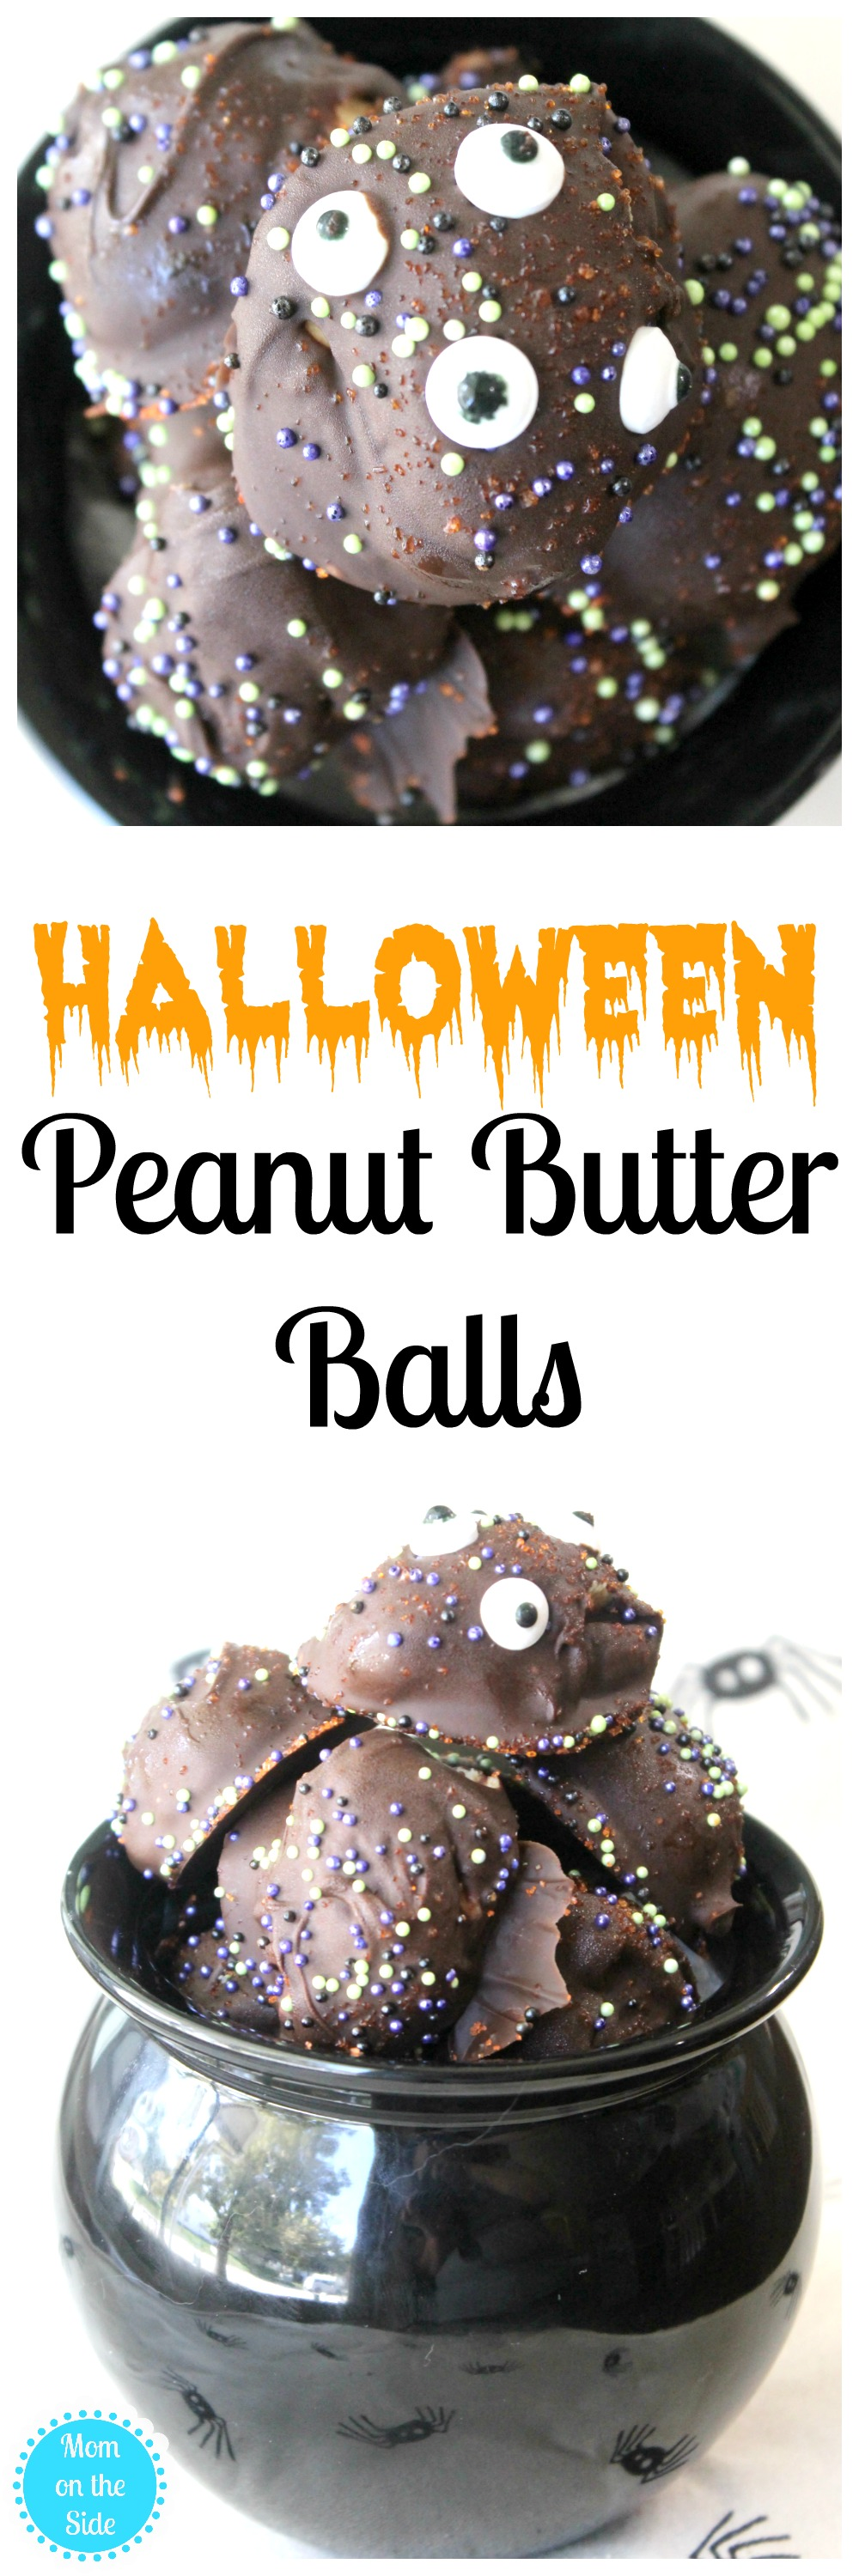 Recipe for Halloween Peanut Butter Balls